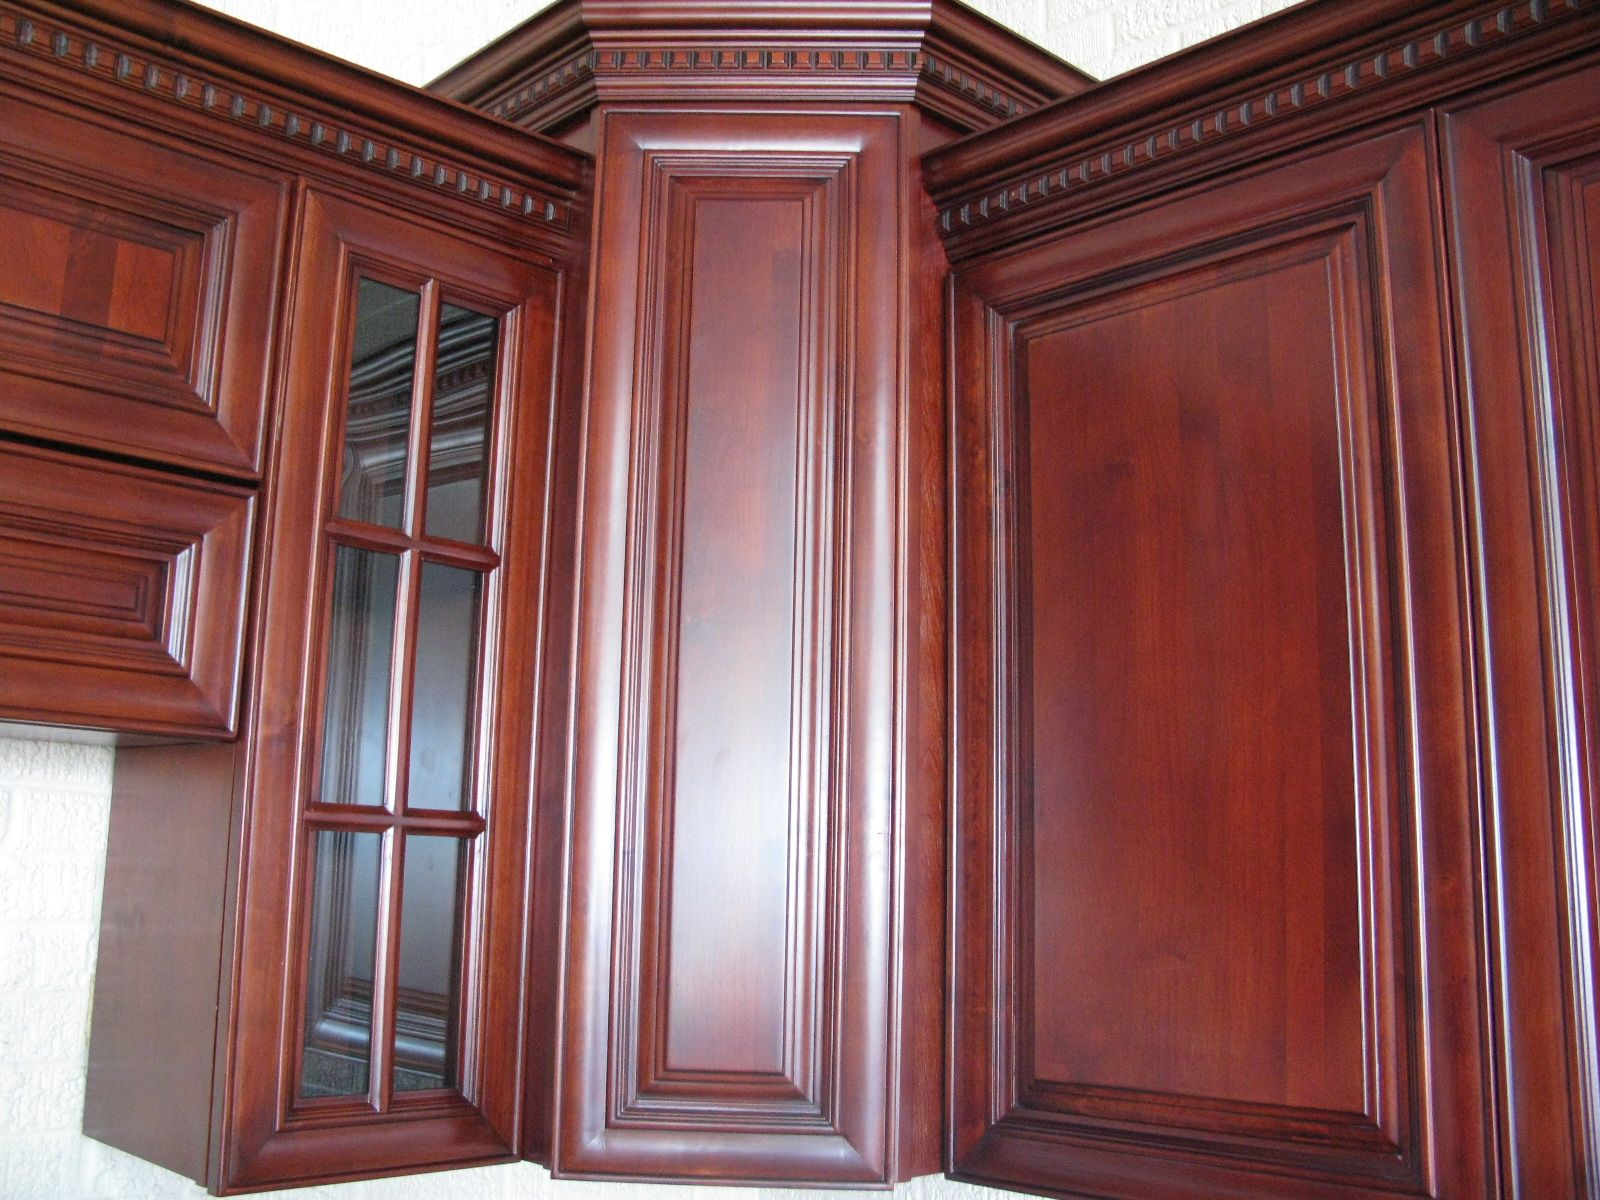 Cherry Maple Cabinets Crown Molding With Dentil Detail Added 15